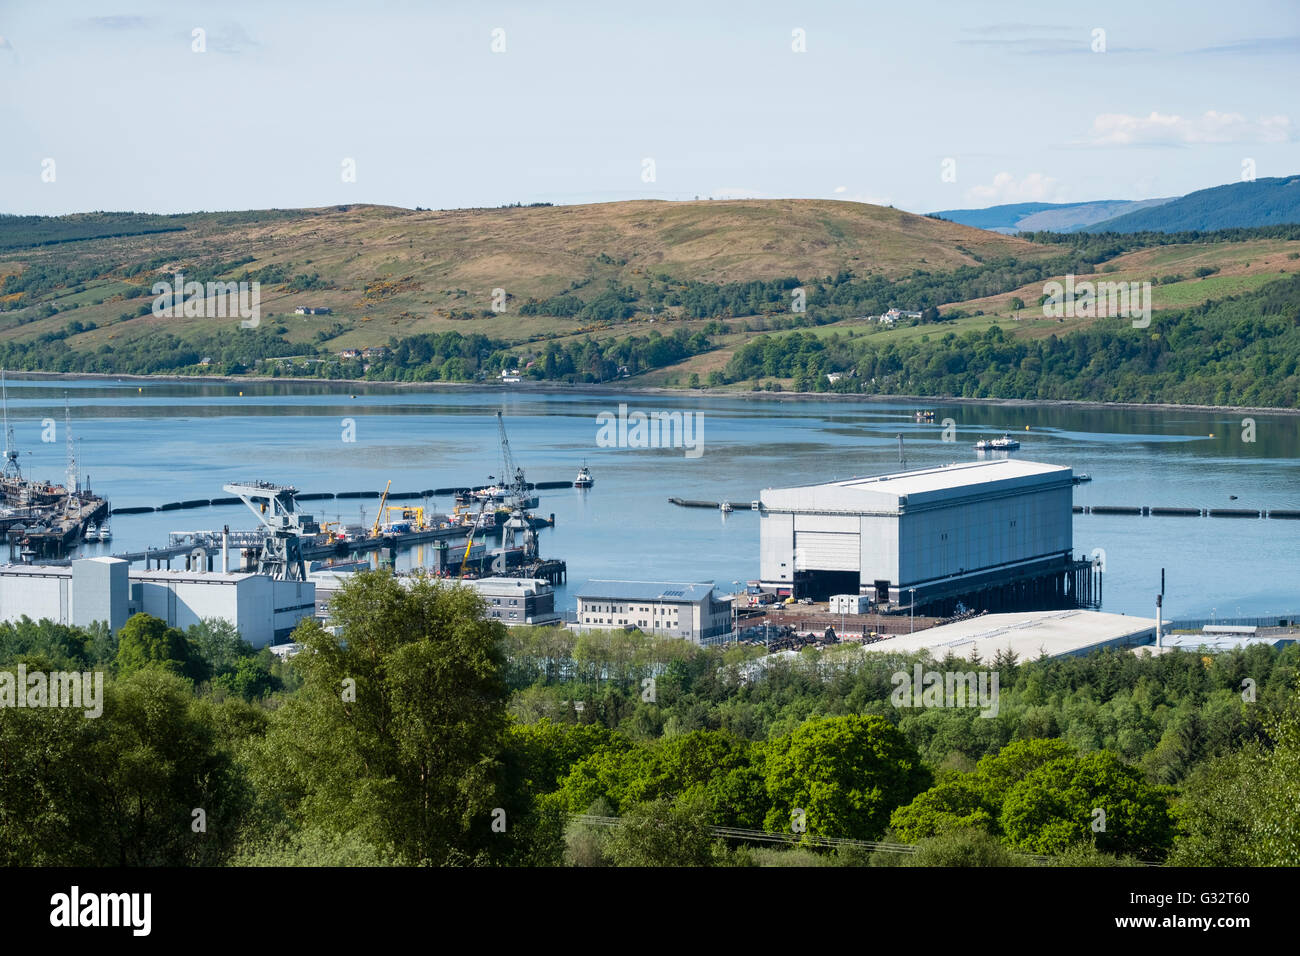 View of Royal Navy base, Clyde, at Faslane on the Gare Loch in Argyll and Bute Scotland United Kingdom - Stock Image